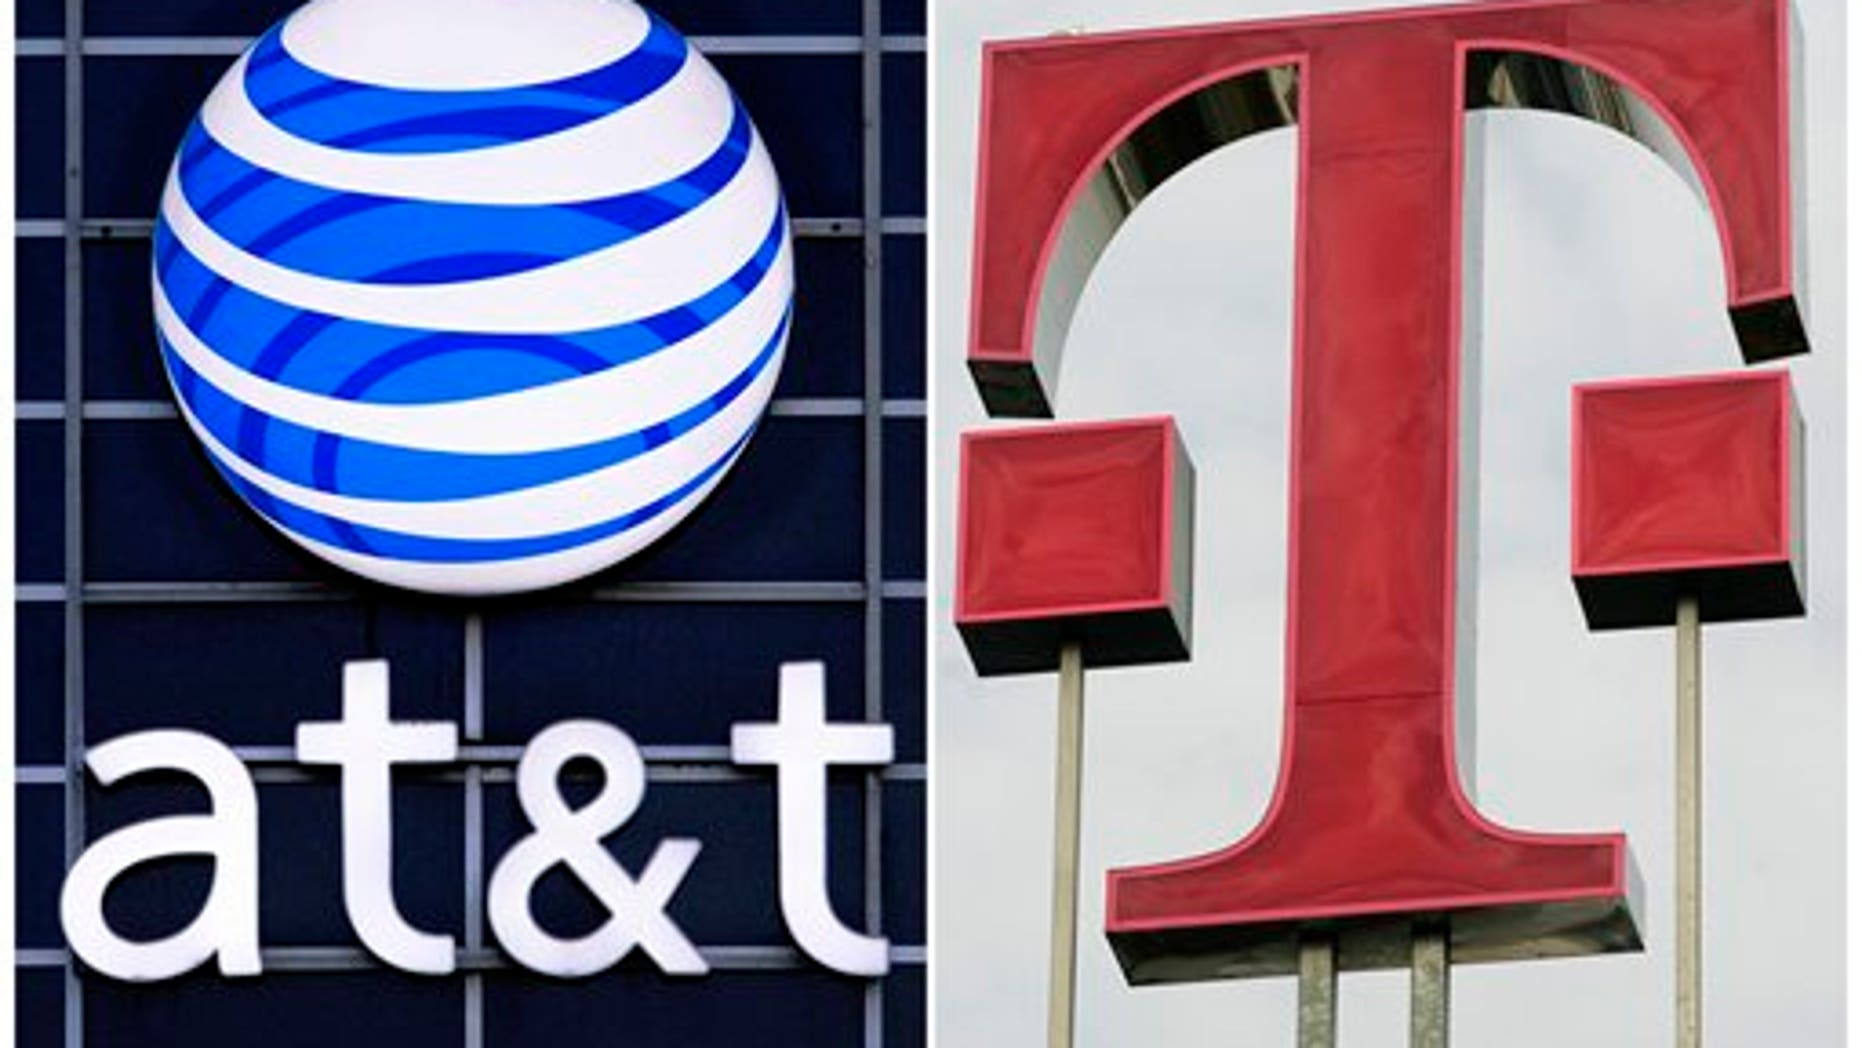 FILE - This file combination photo displays logos for AT&T, left, and Deutsche Telekom AG. The Justice Department filed suit Wednesday, Aug. 31, 2011, to block AT&T's $39 billion deal to buy T-Mobile USA on grounds that it would raise prices for consumers. (AP Photo/dapd File)